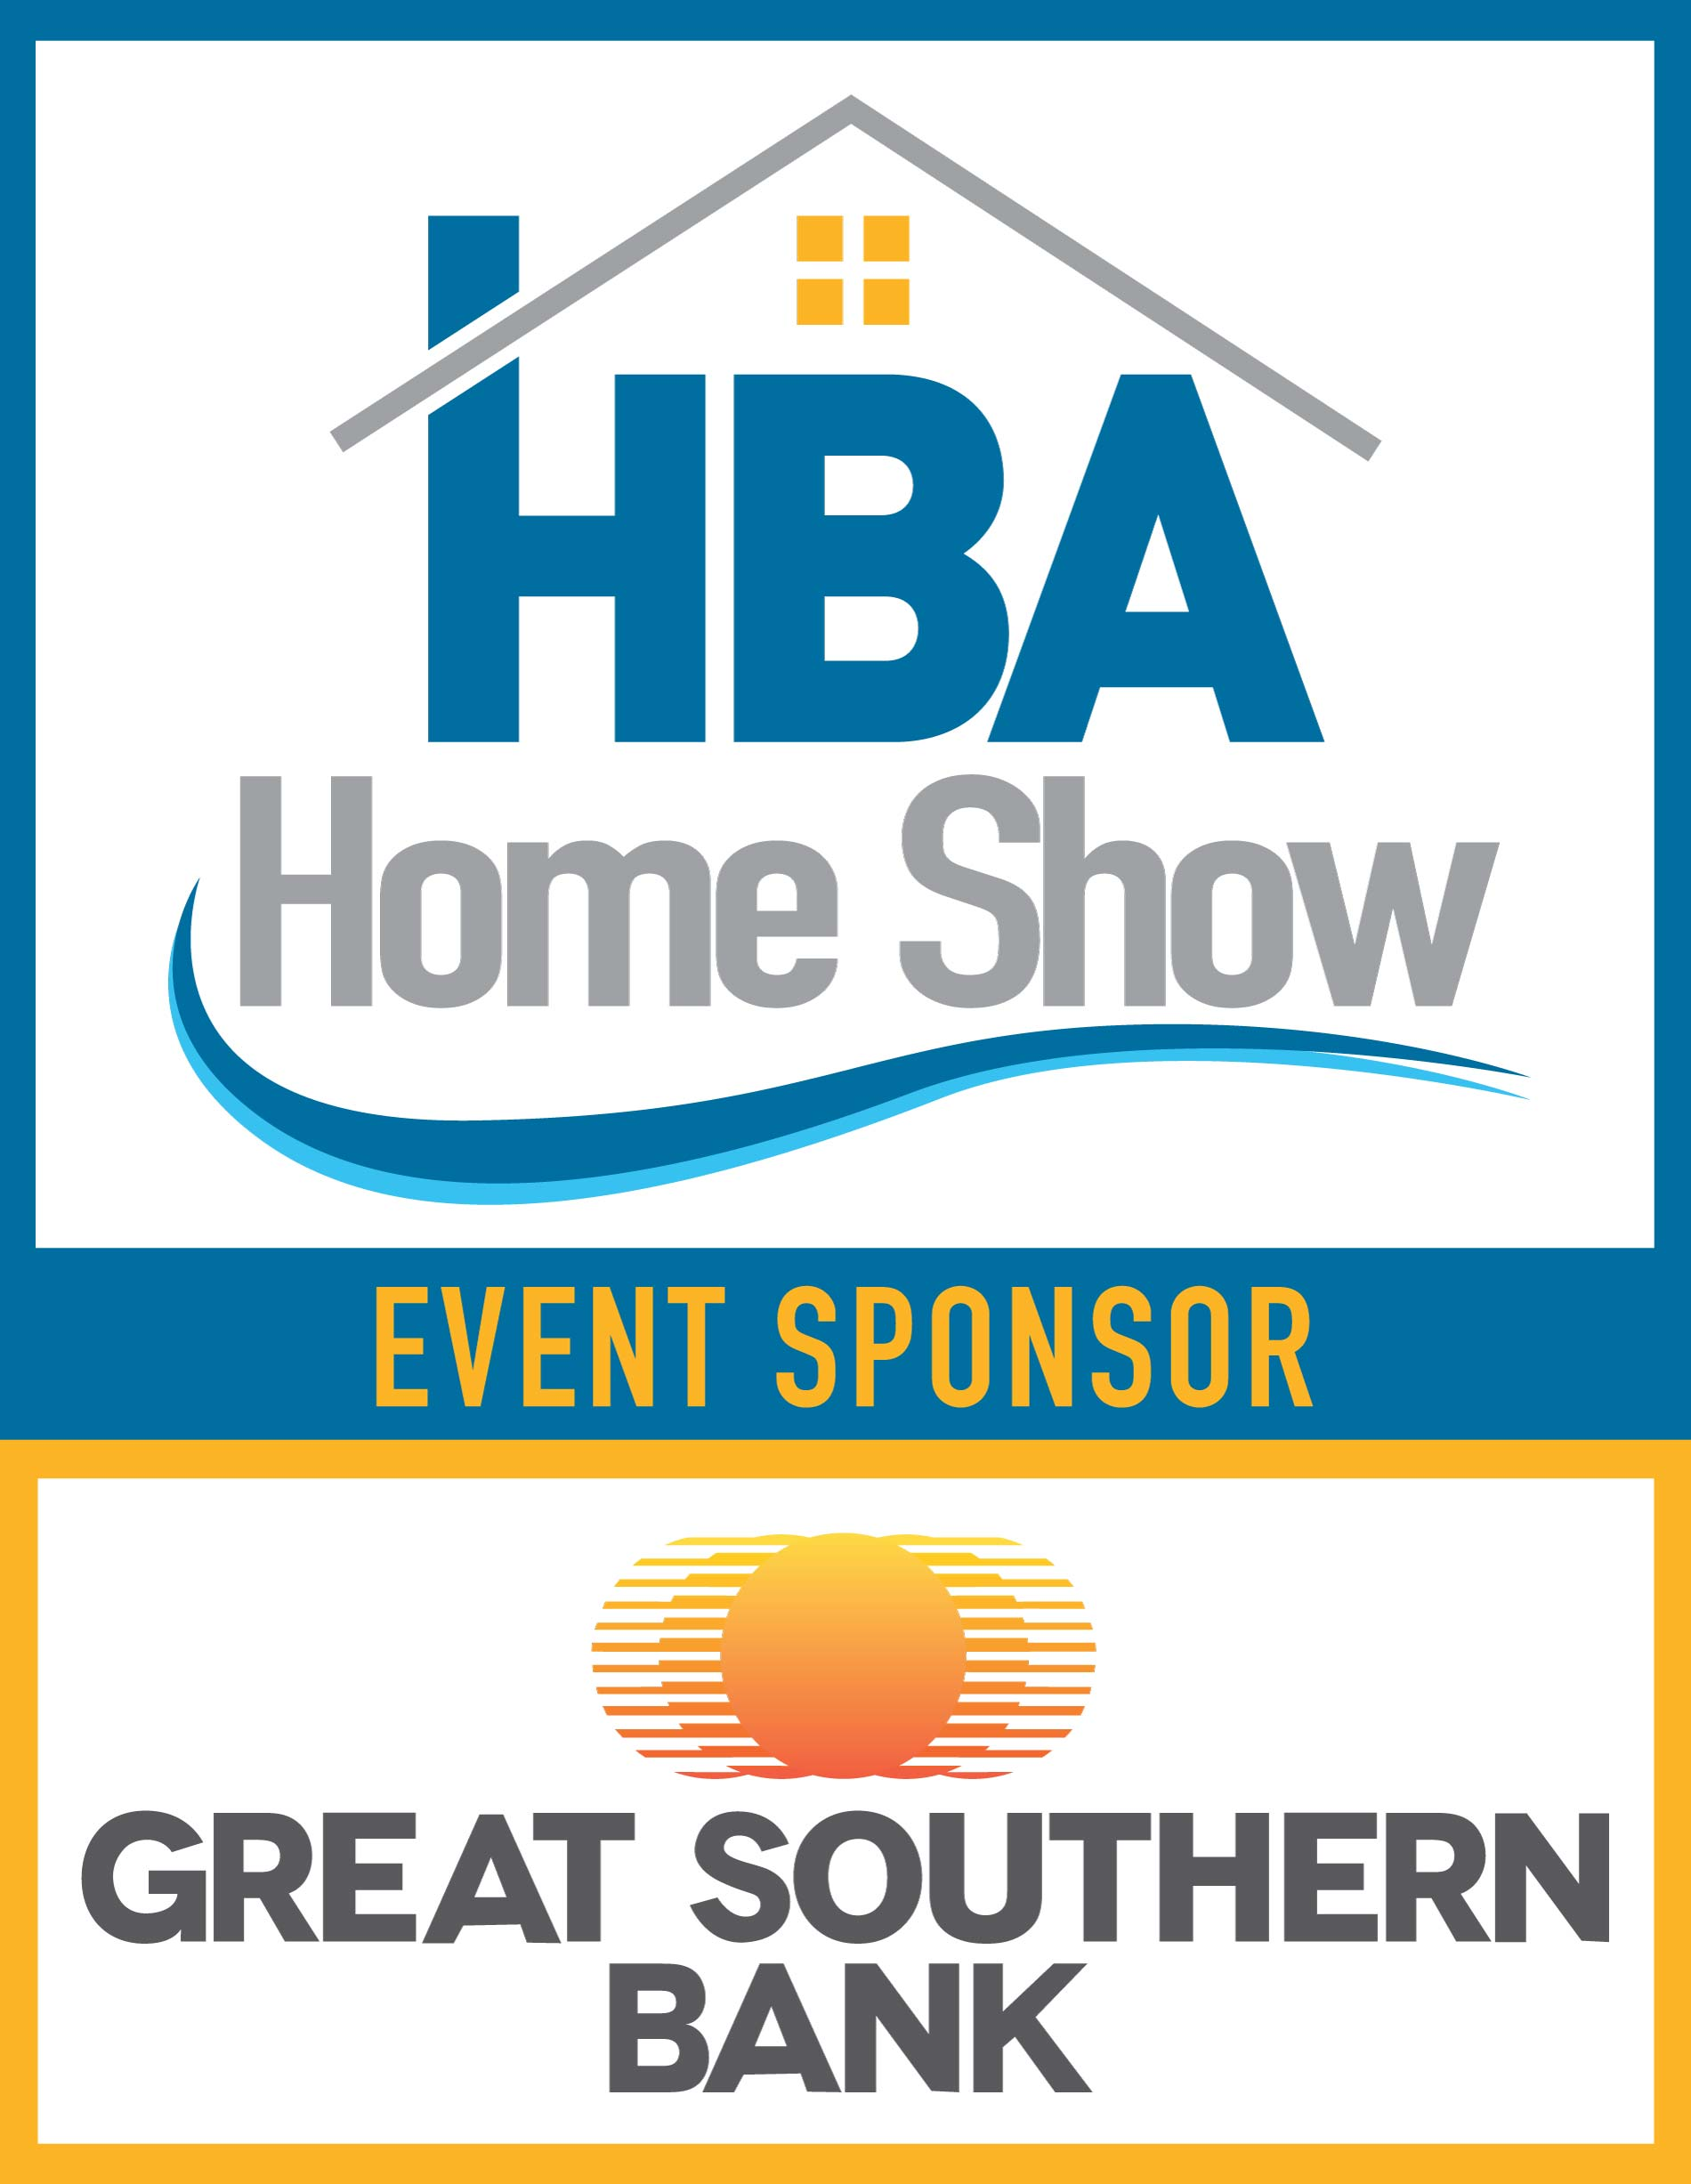 HBA Home Show Event Sponsor - Great Southern Bank